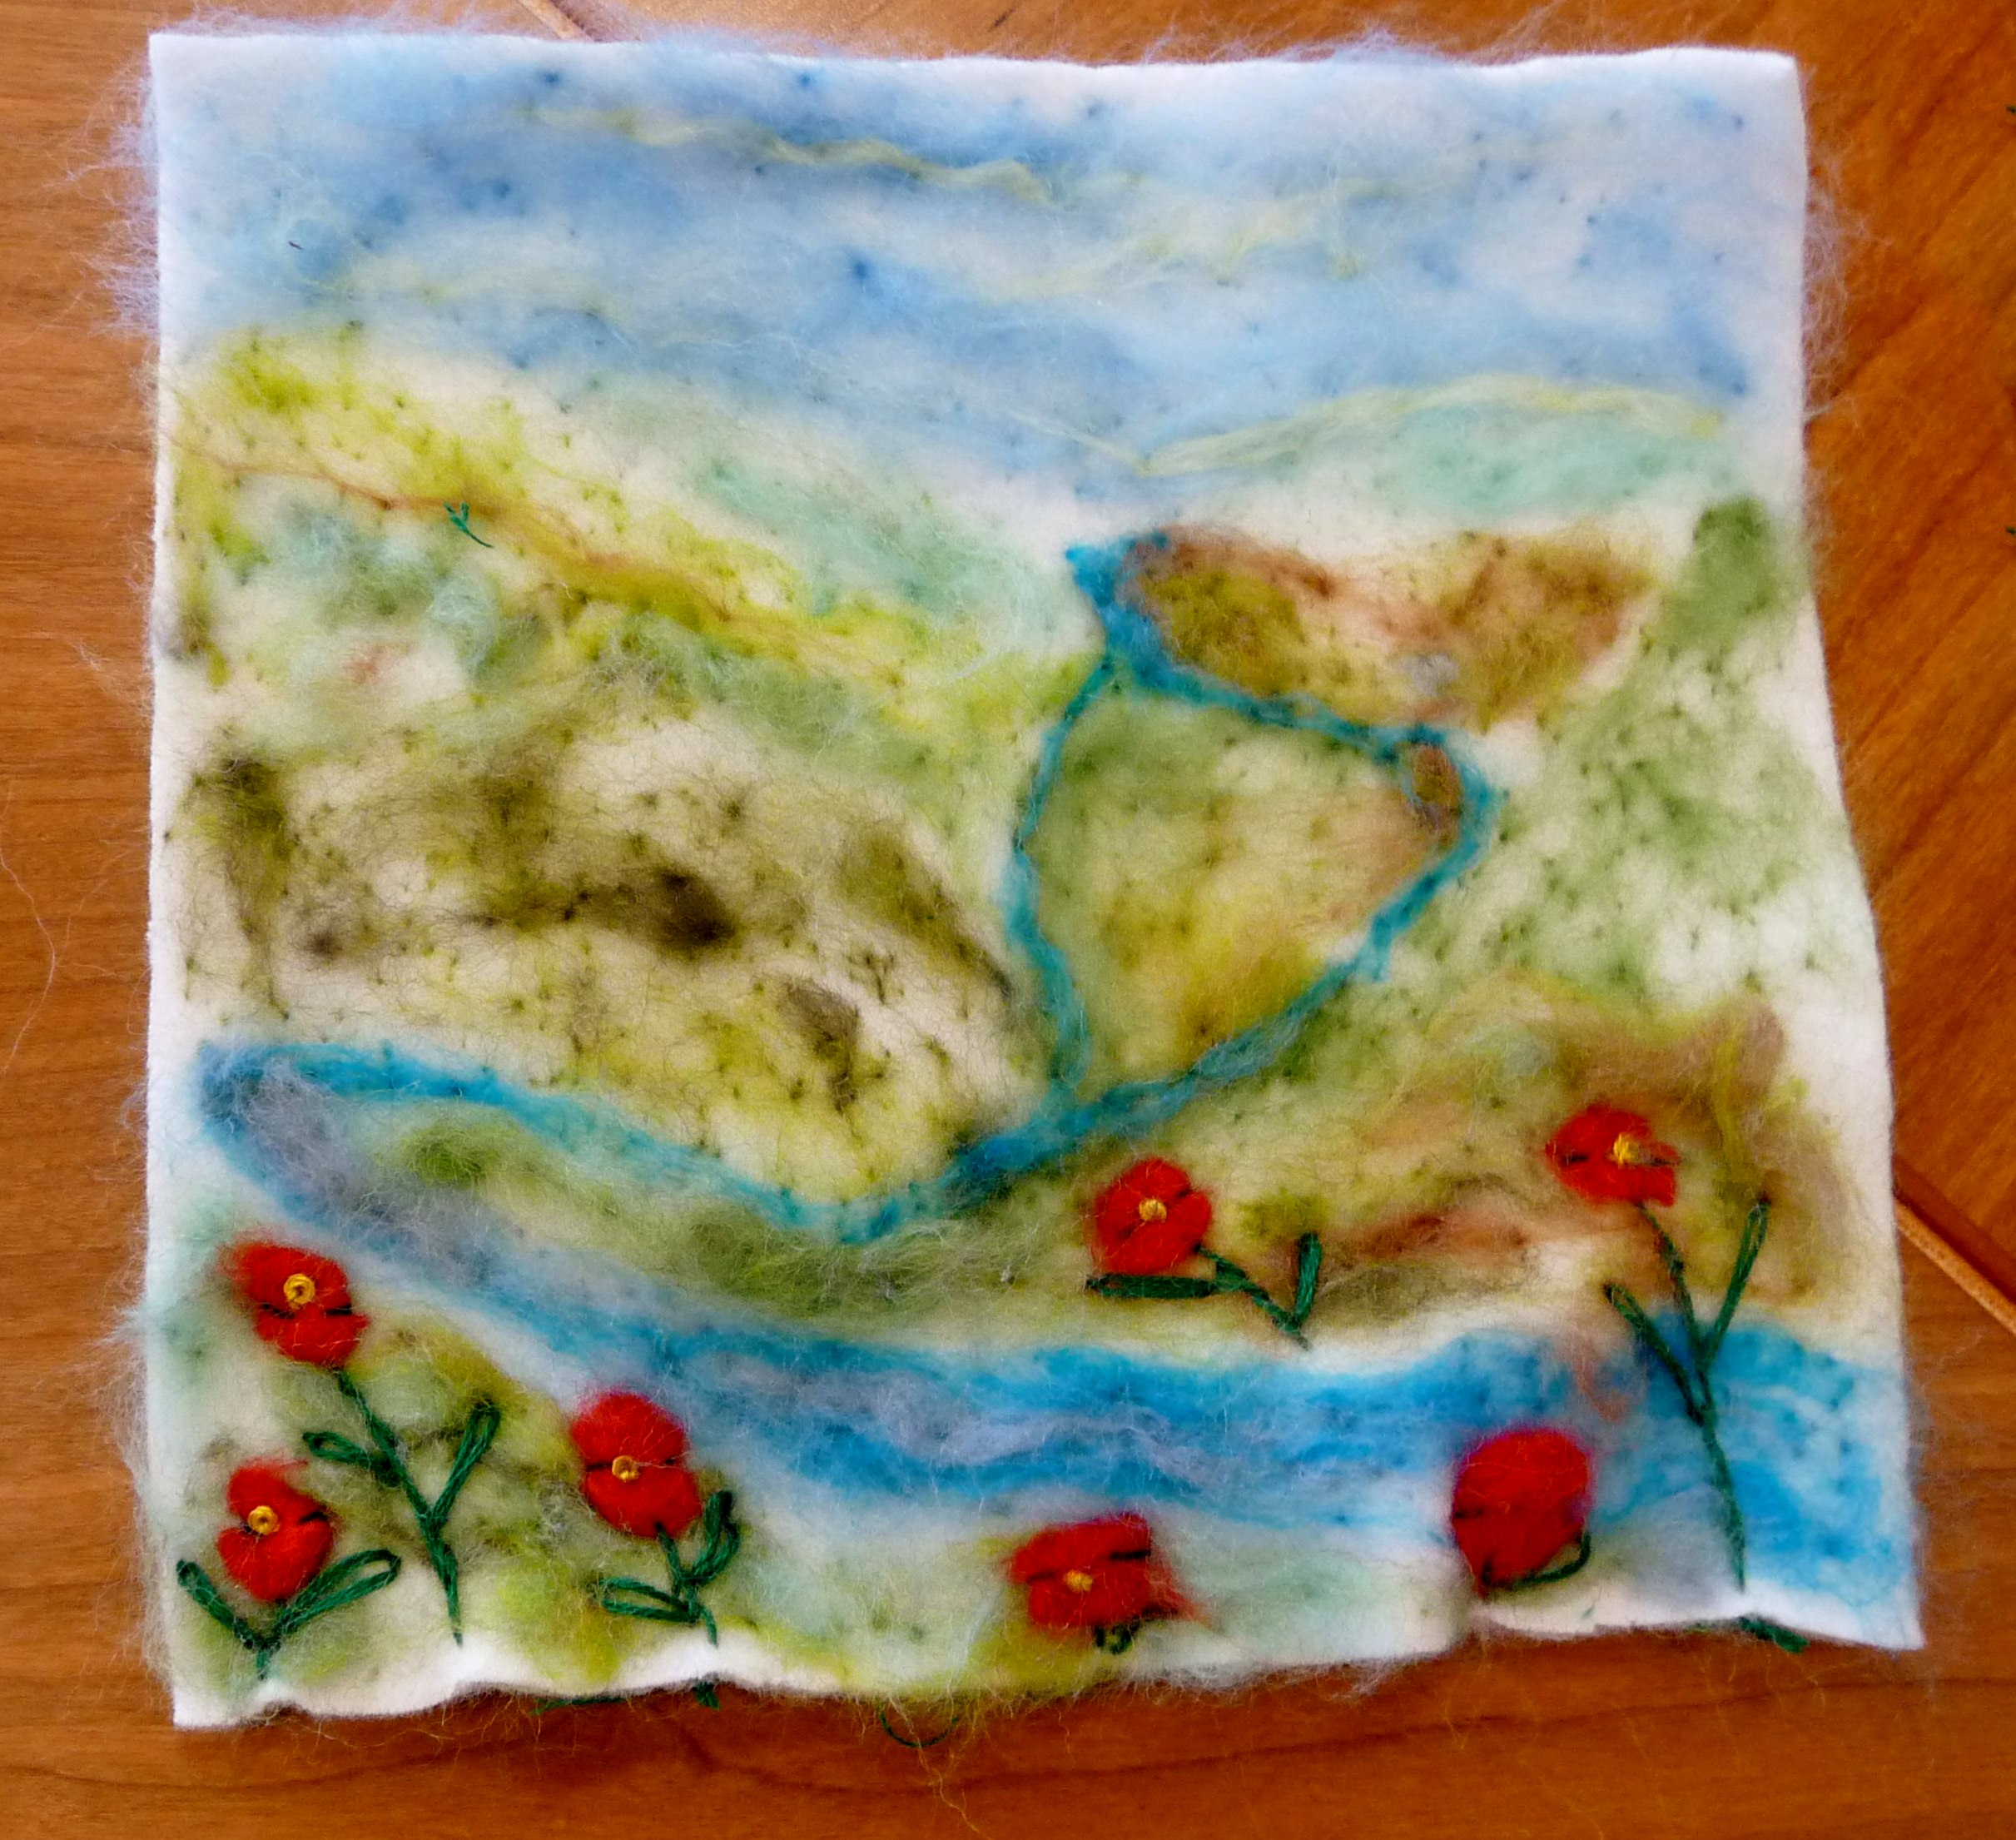 YE group May 2015. This is Chloe's completed needlefelted landscape